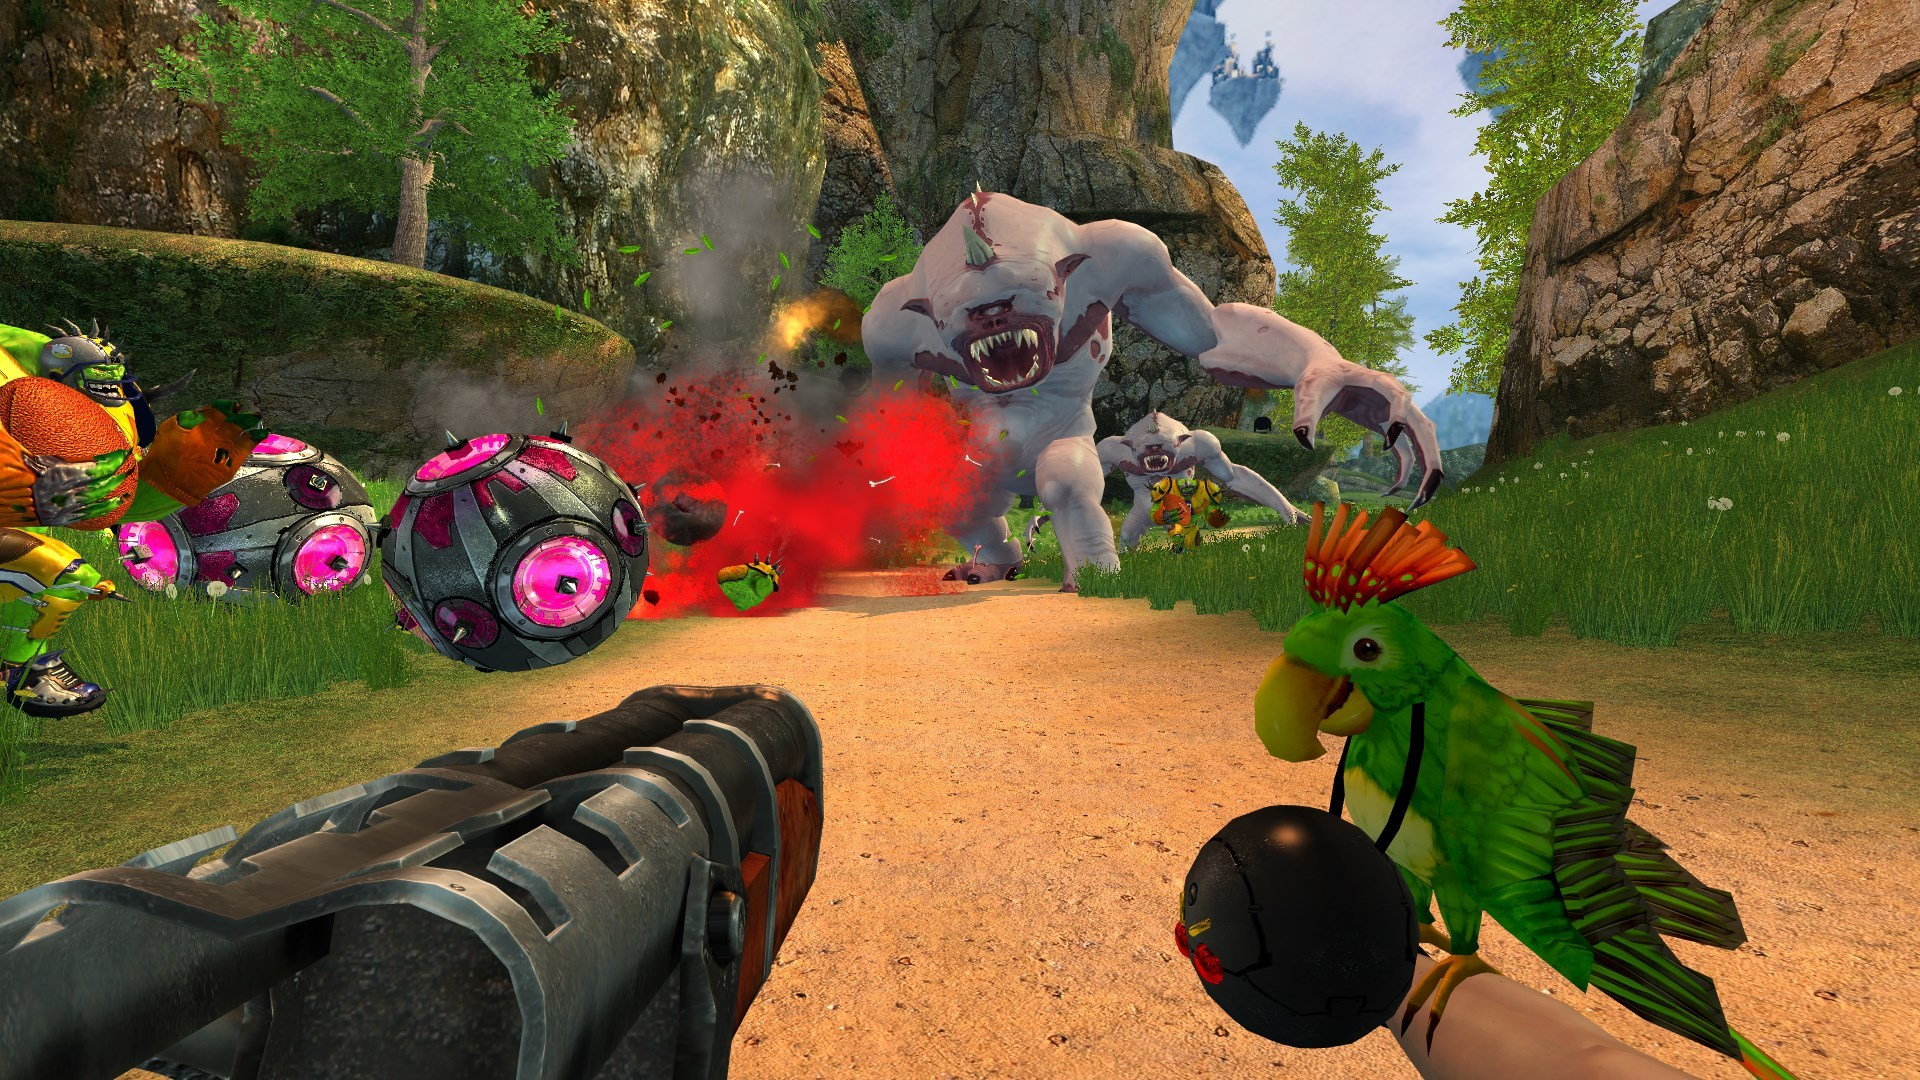 Serious Sam 2 gets a seriously big update 15 years after launch